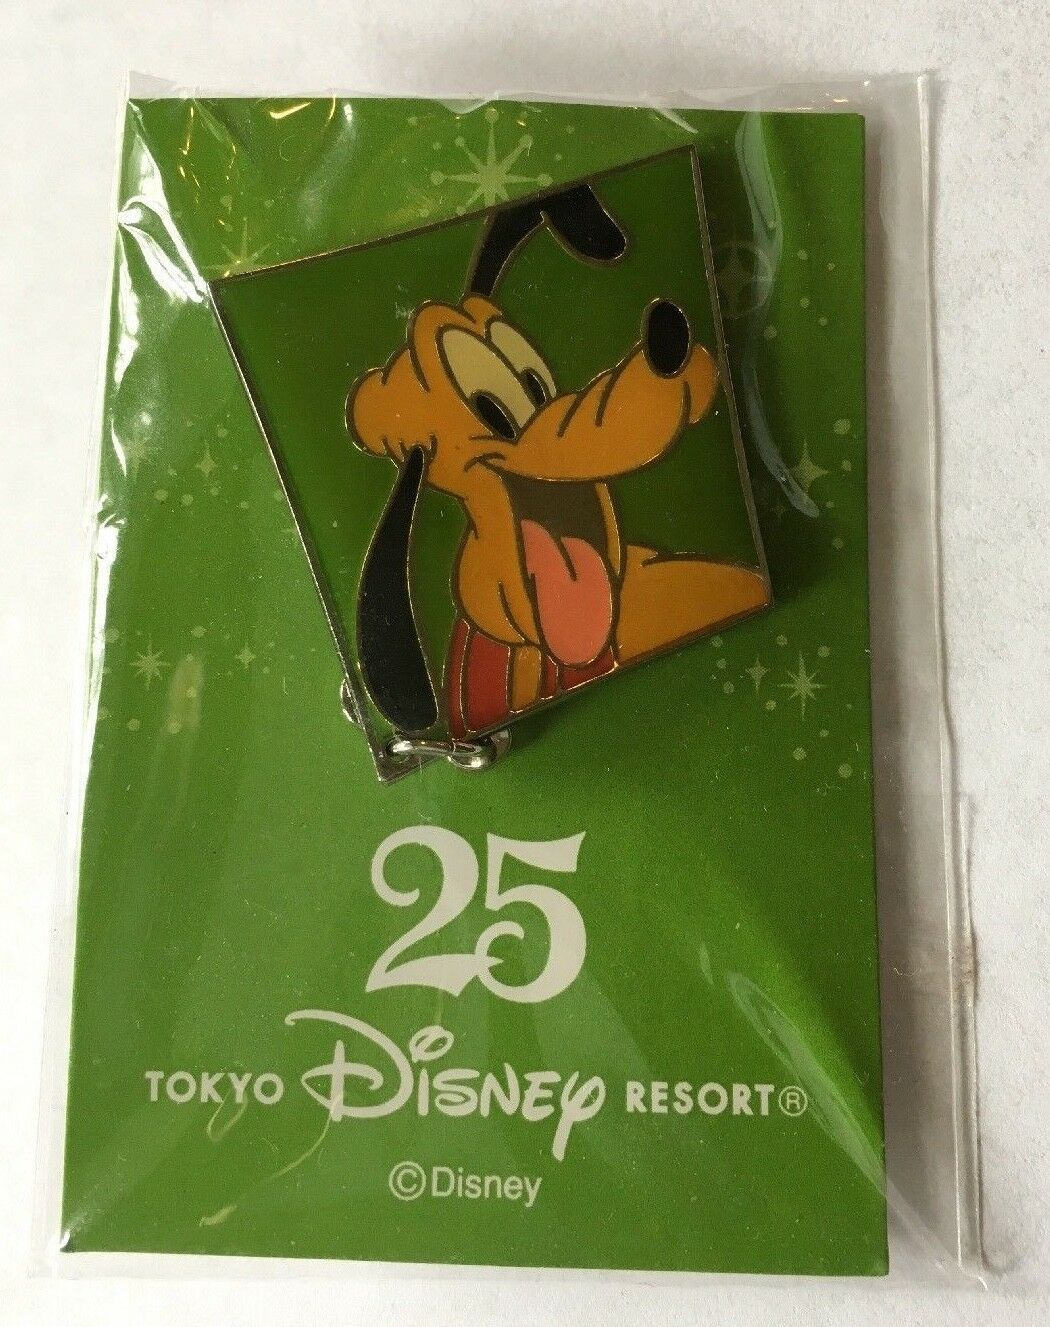 Primary image for Disney Tokyo Pin Pluto 25th Anniversary No.12 Pluto Disney Pin NEW